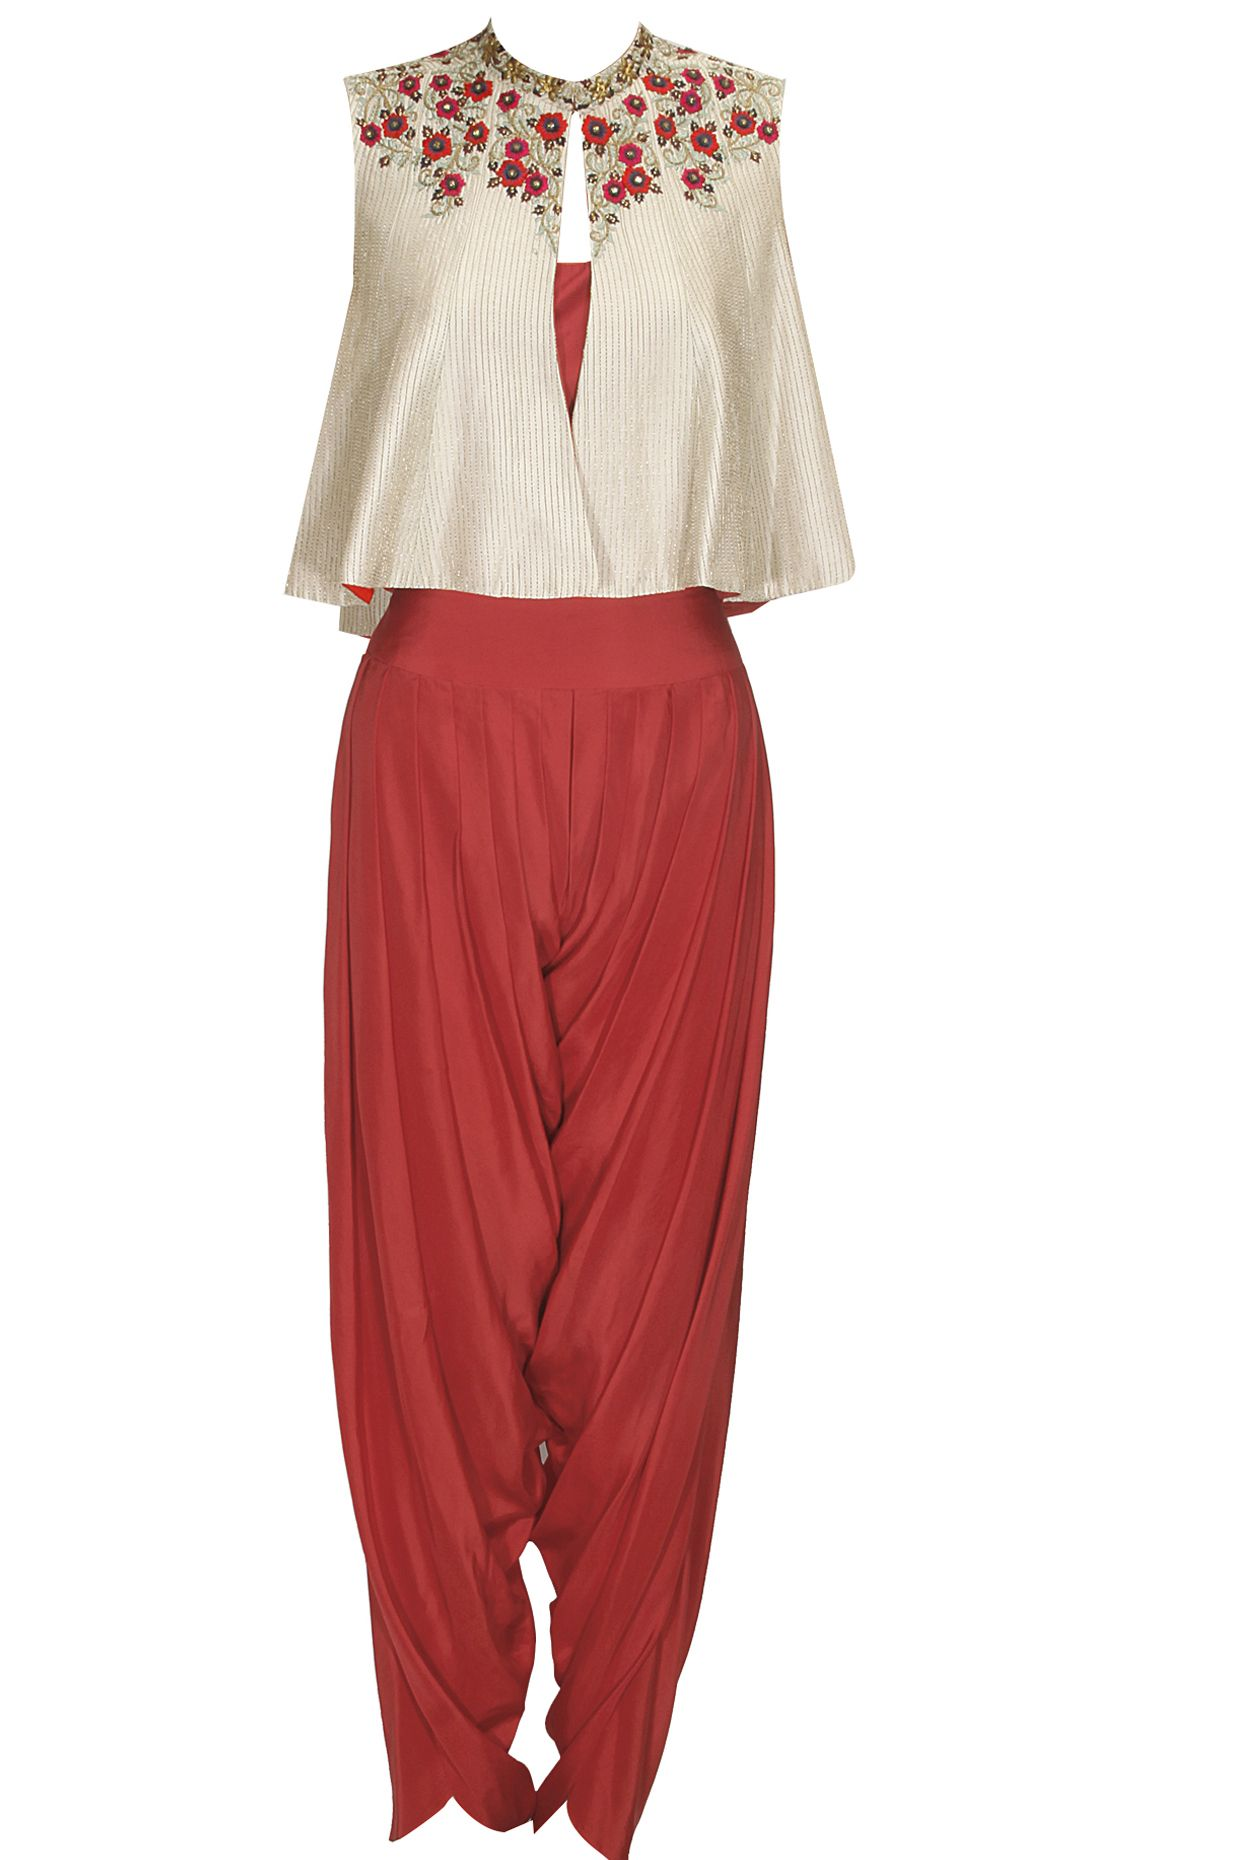 49c299892 Ivory and red floral embroidered jacket with dhoti pants available only at Pernia's  Pop Up Shop.